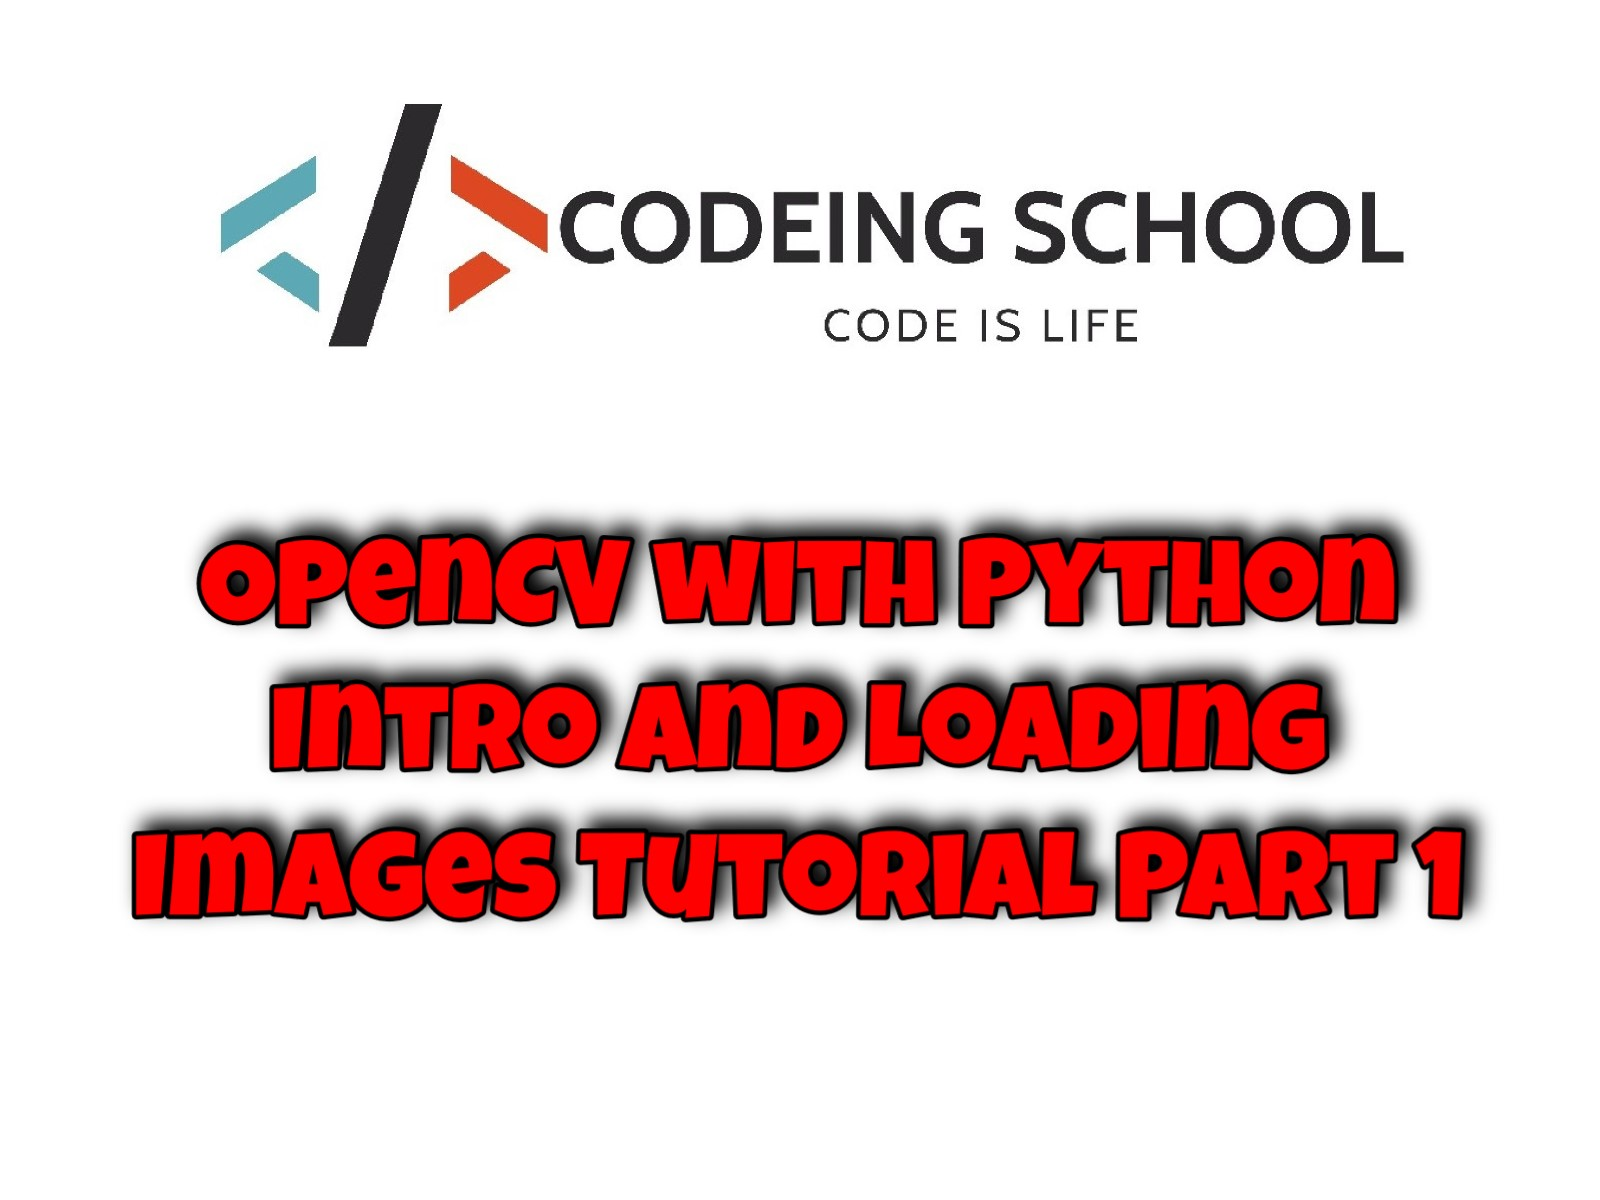 OpenCV with Python Intro and Loading Images Tutorial Part 1